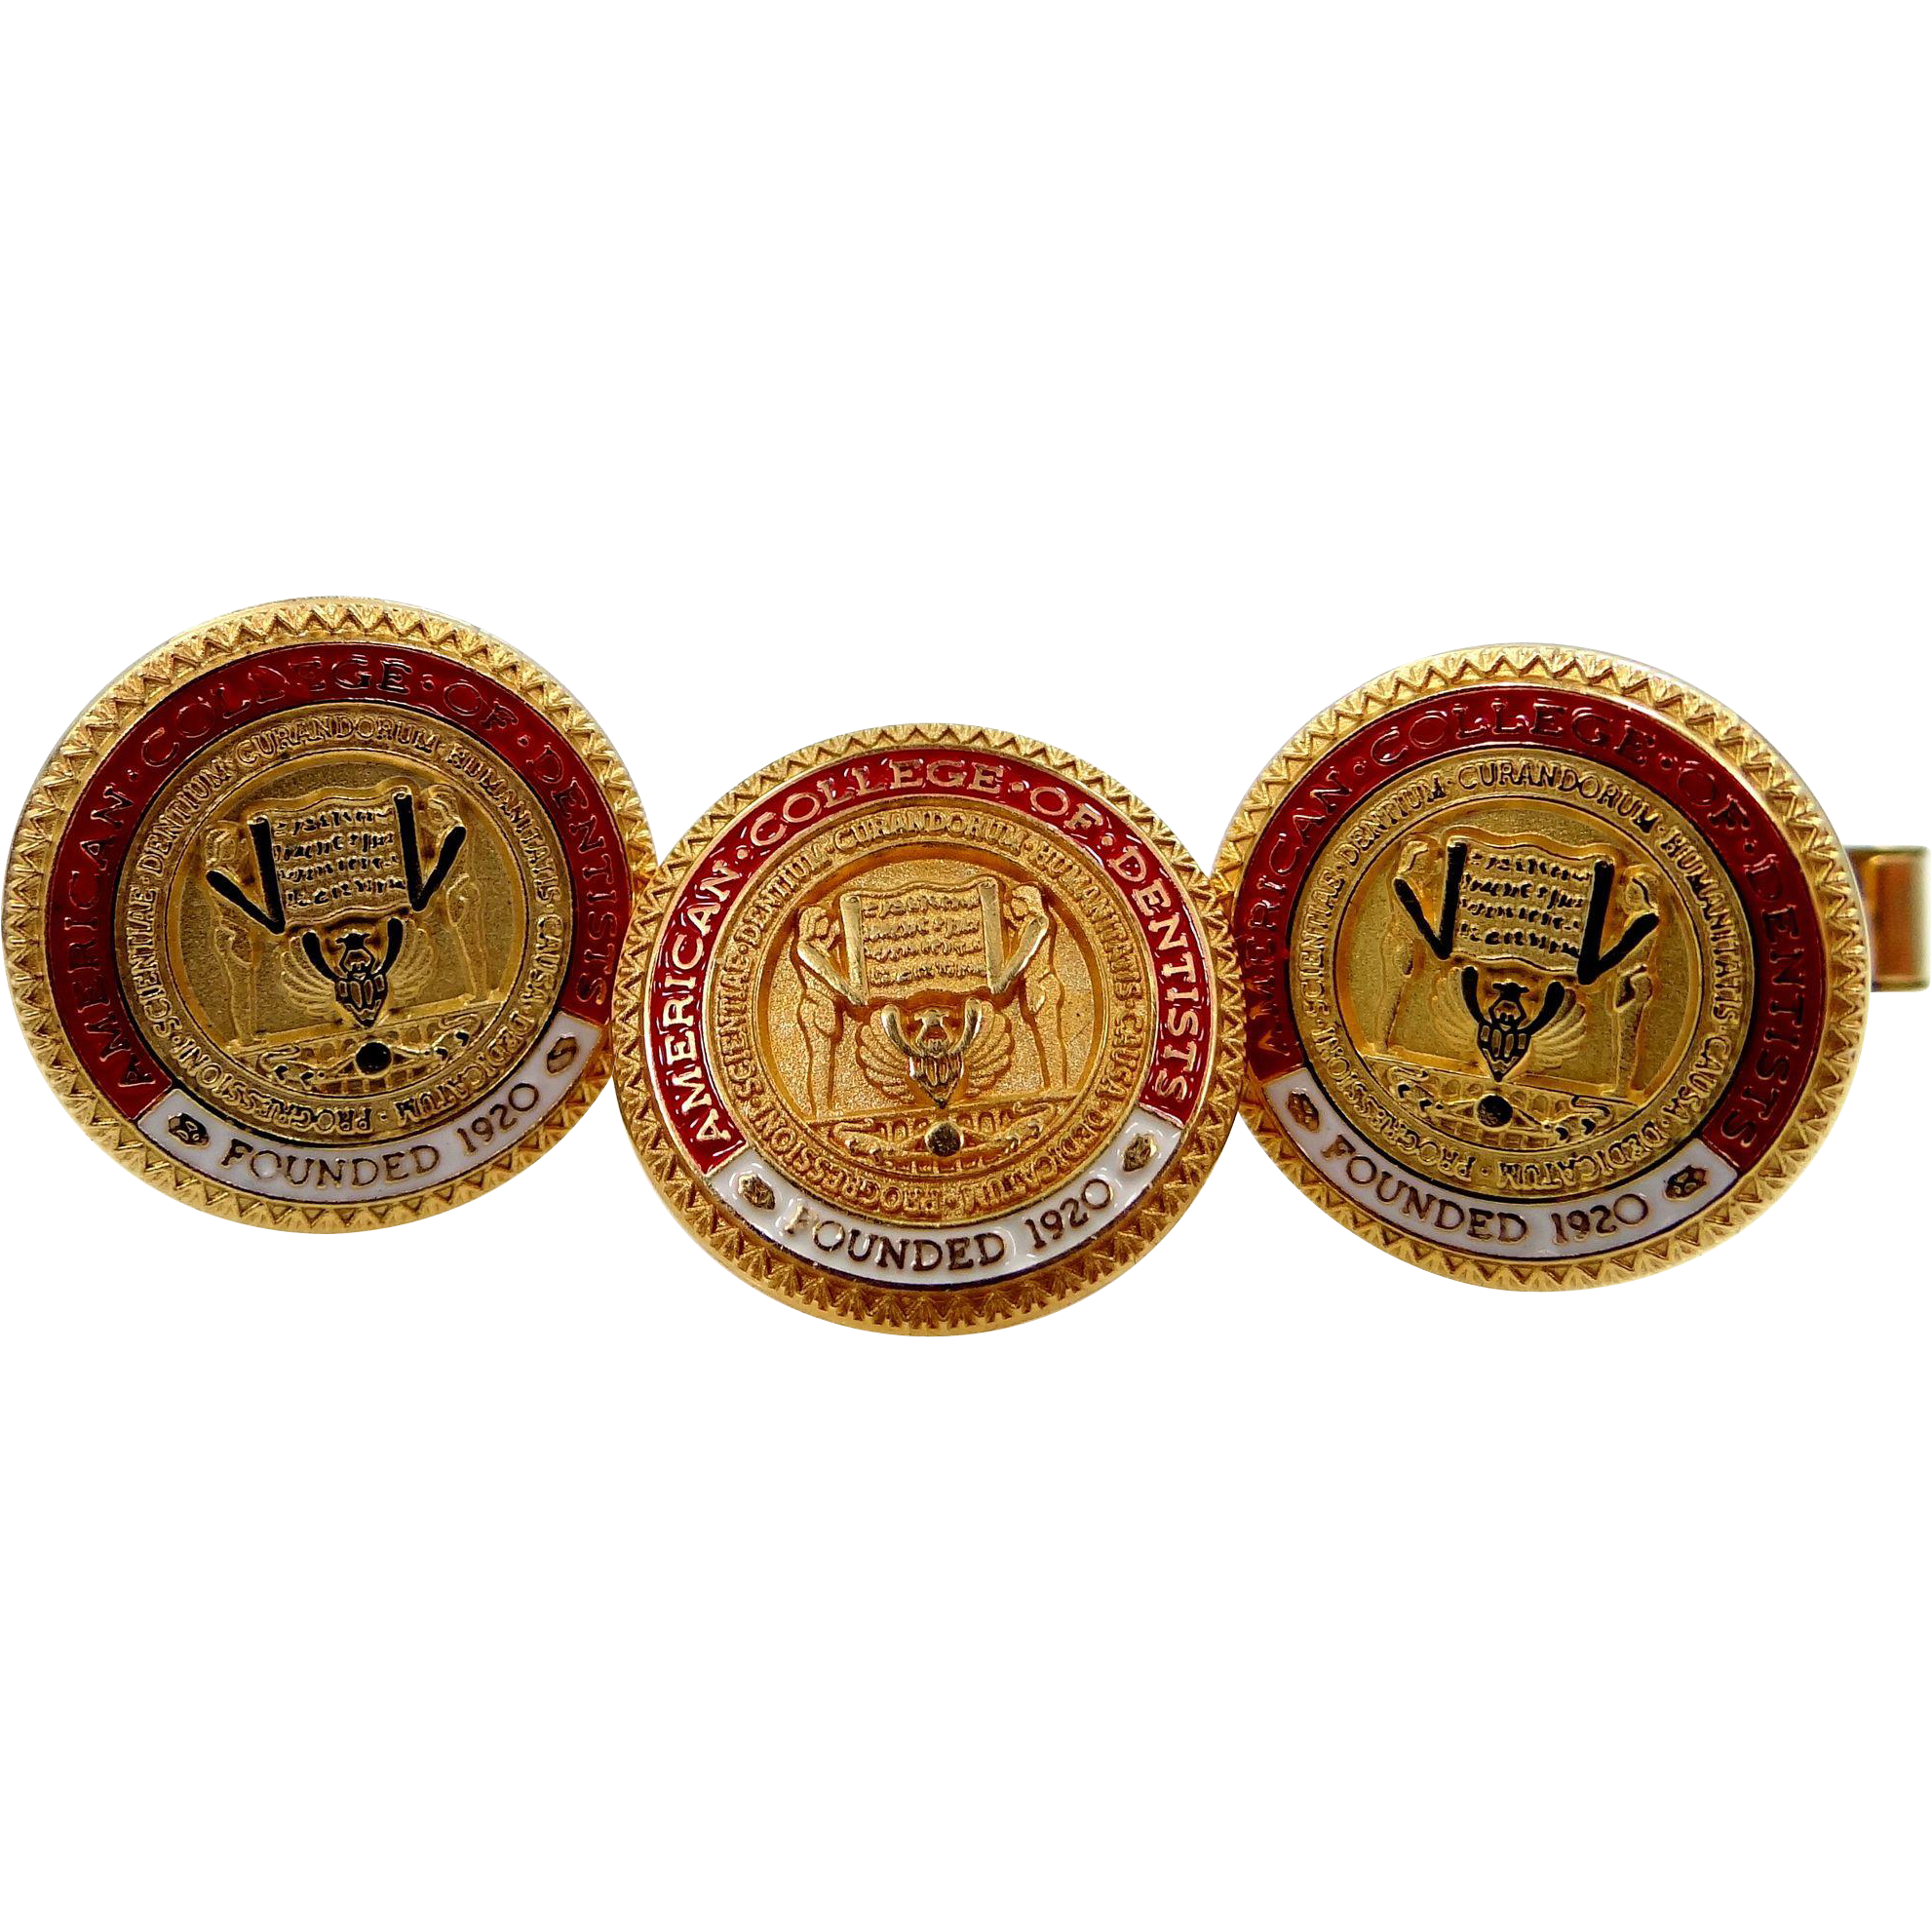 American College of Dentists 10k Gold and Gold Fld. Tie Tack & Cufflinks